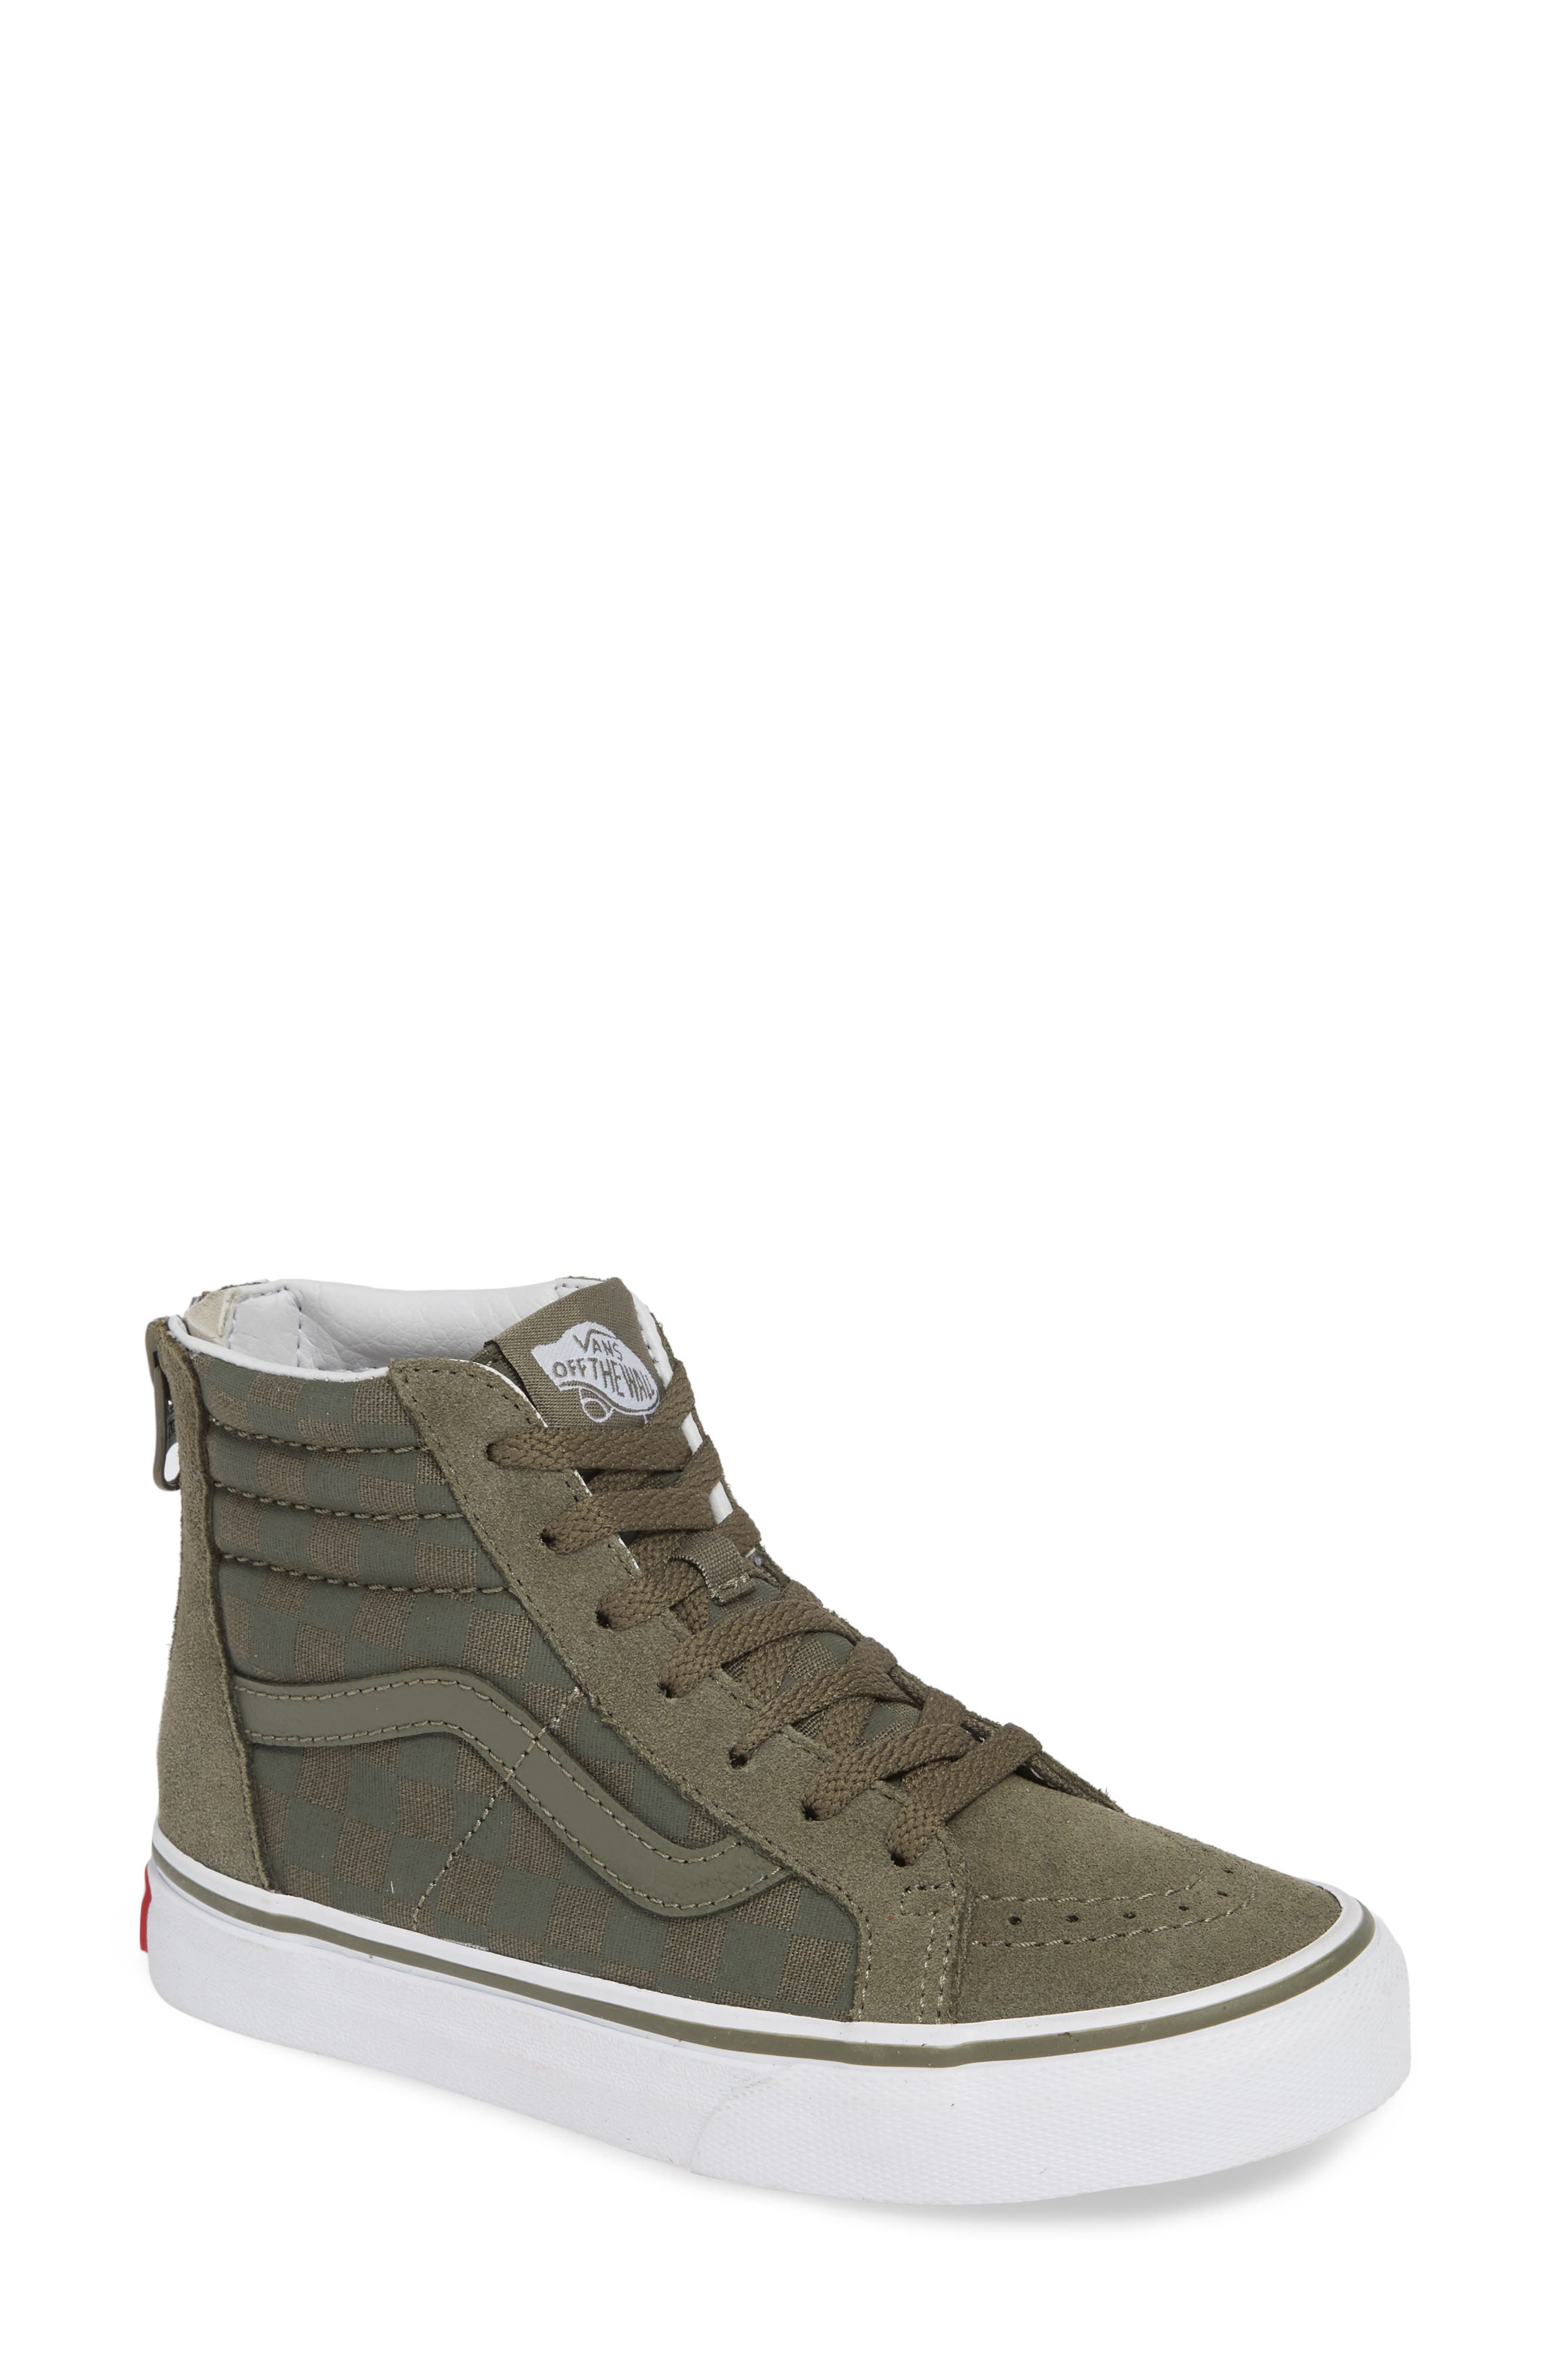 'Sk8-Hi' Sneaker,                         Main,                         color, DUSTY OLIVE LEATHER